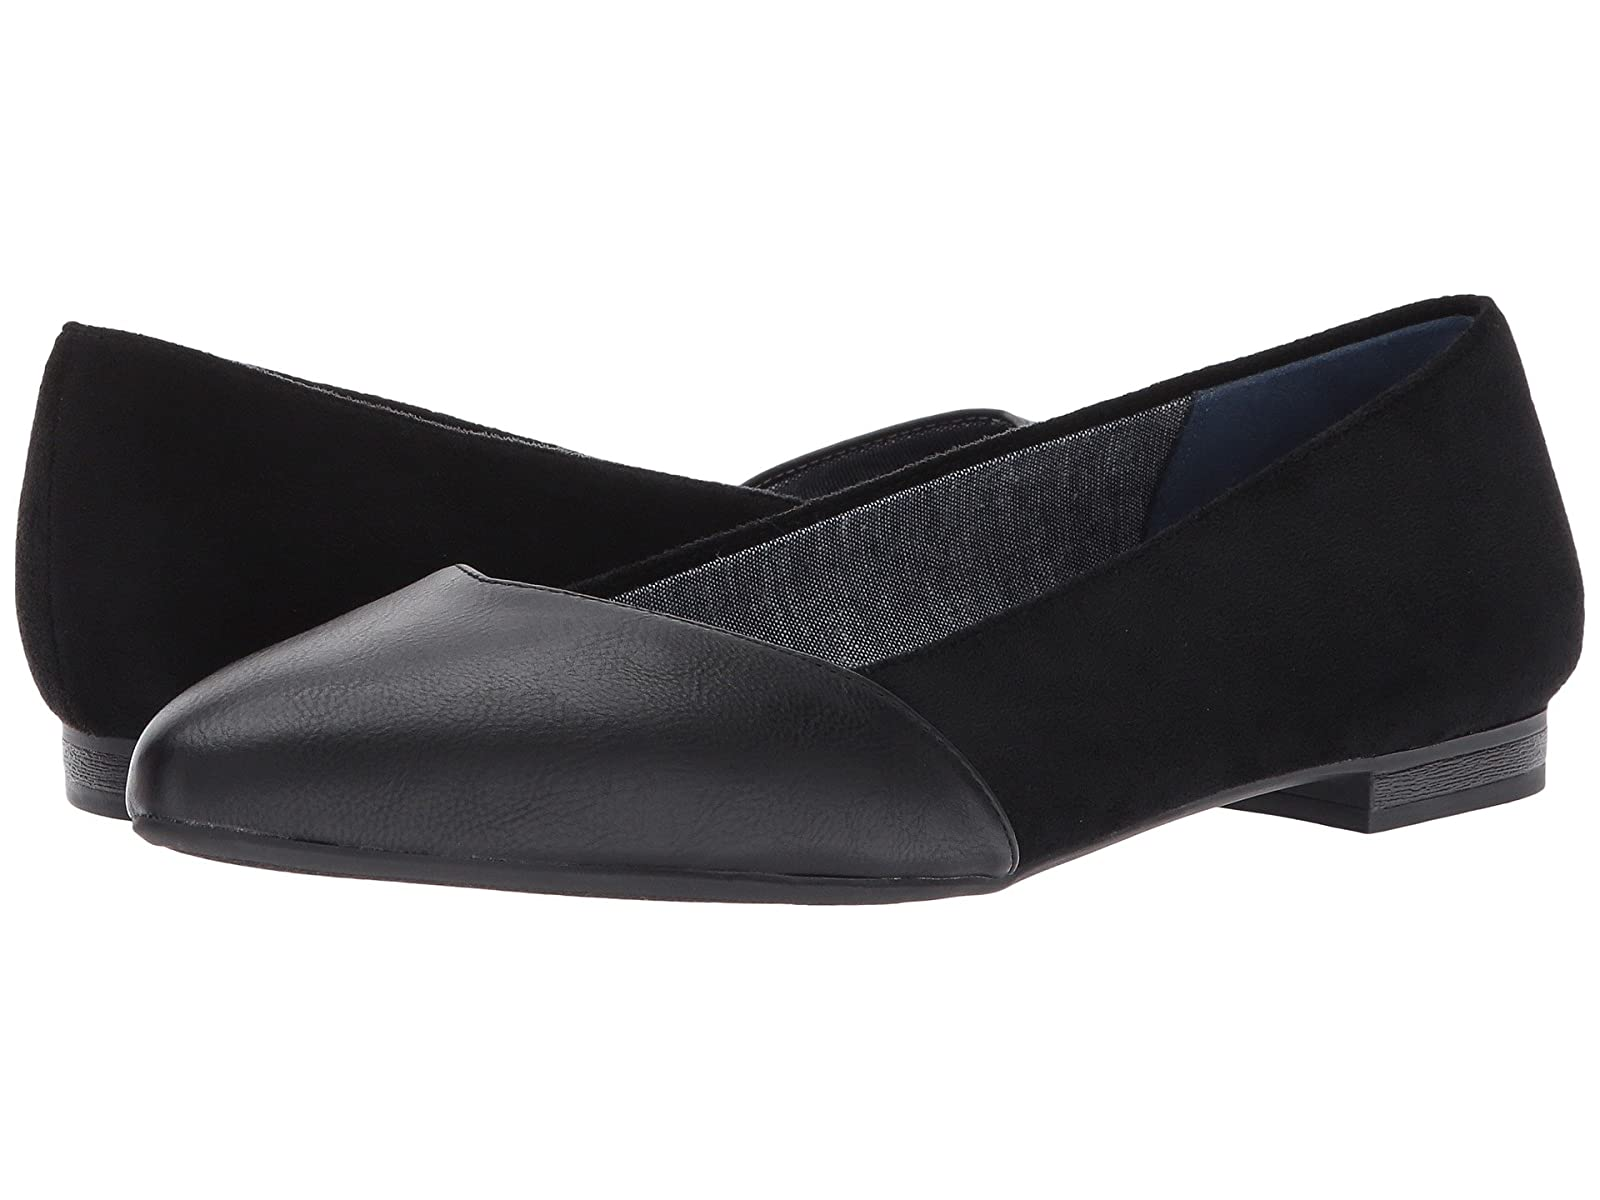 Dr. Scholl's AllowCheap and distinctive eye-catching shoes